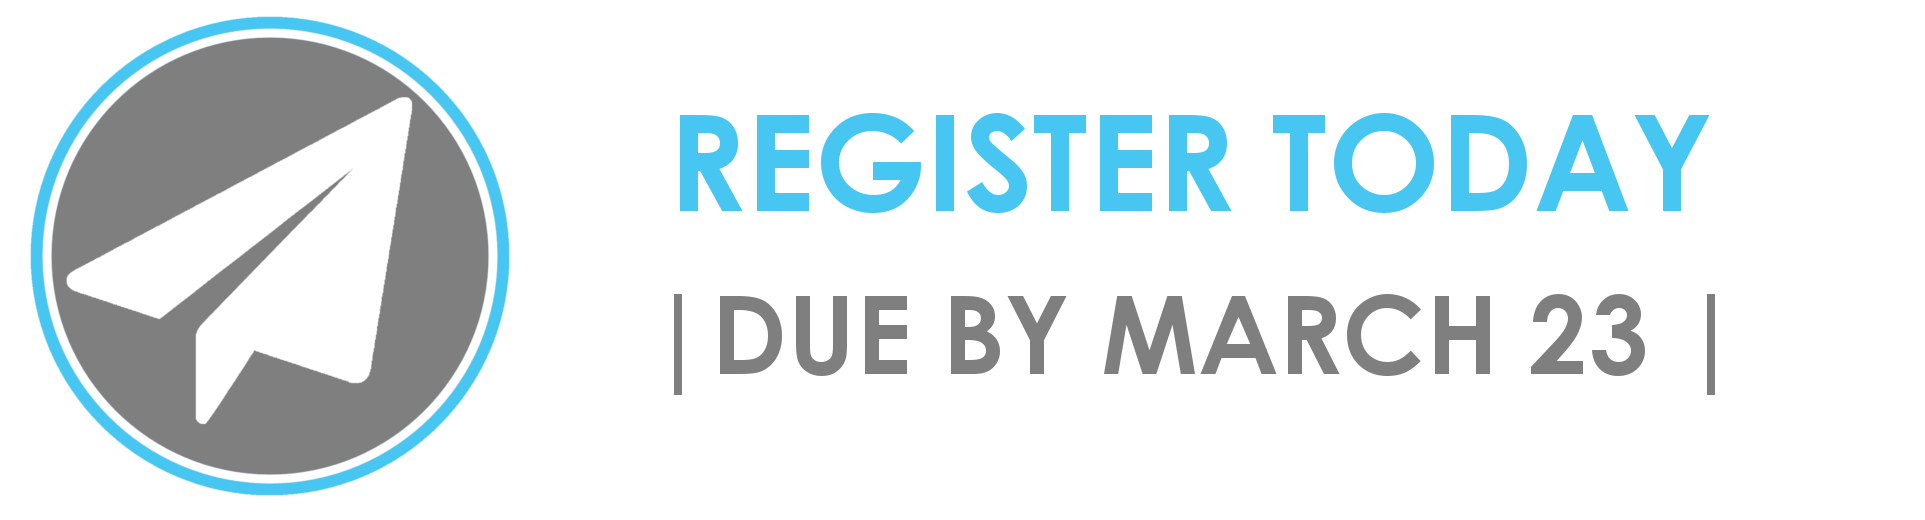 Register_Today.png